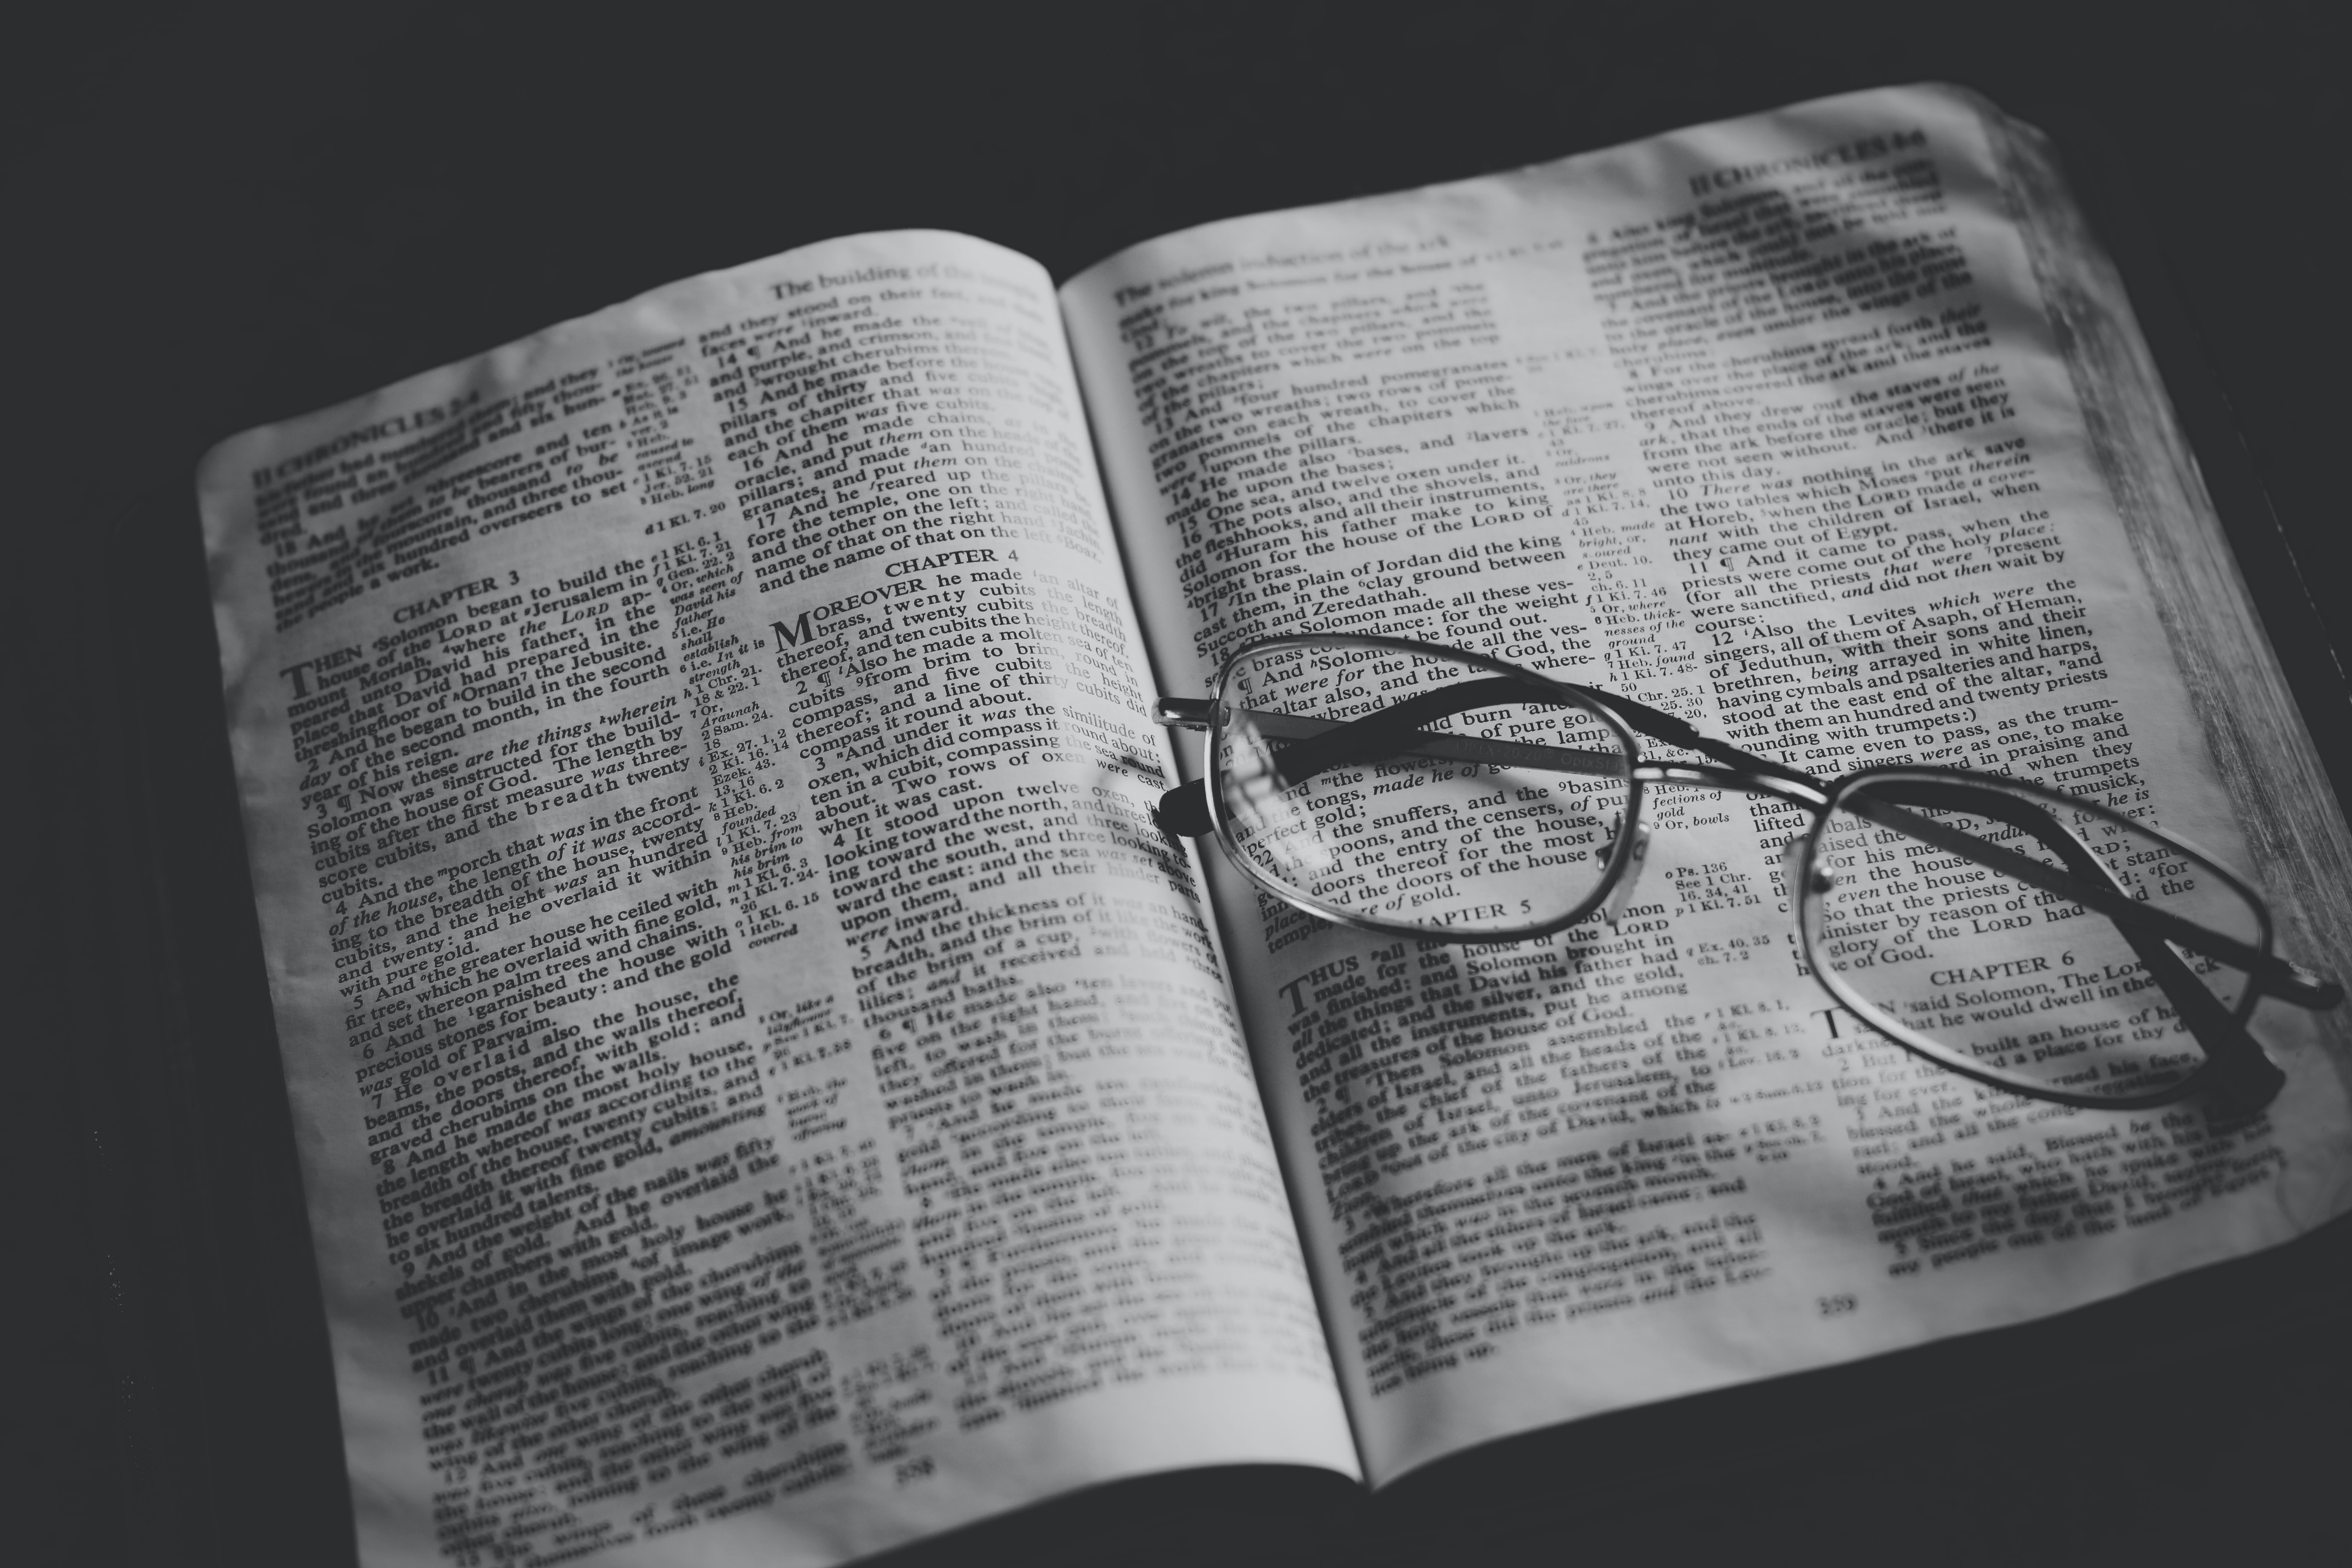 grayscale photo of eyeglasses on top of book